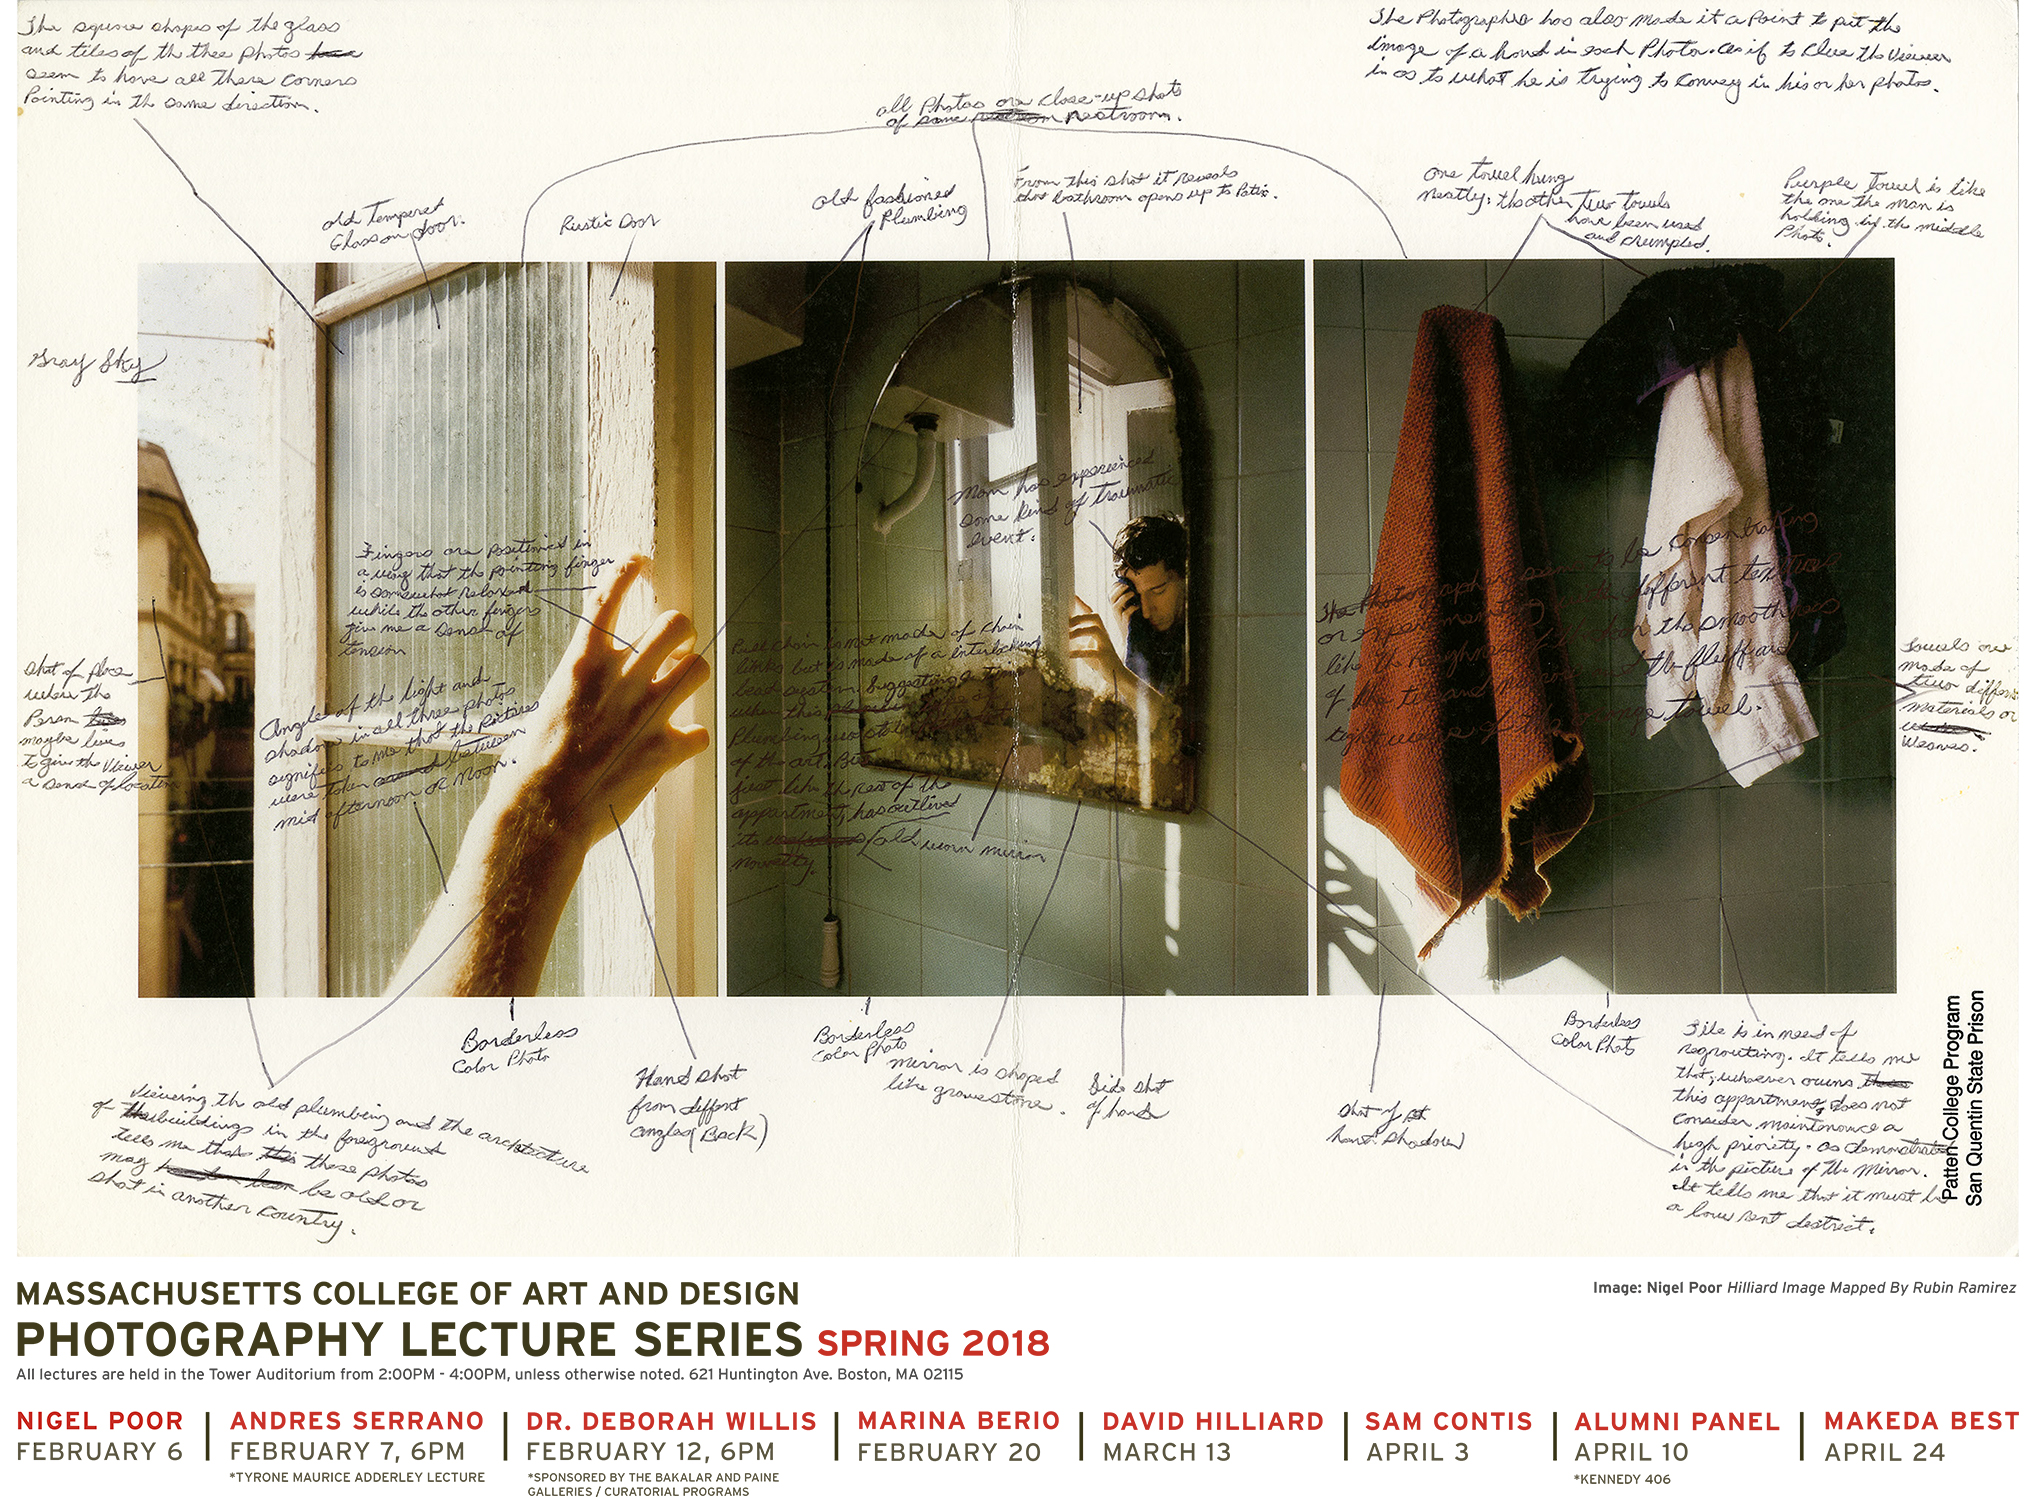 MassArtLectures SP18.pdf-2.jpg